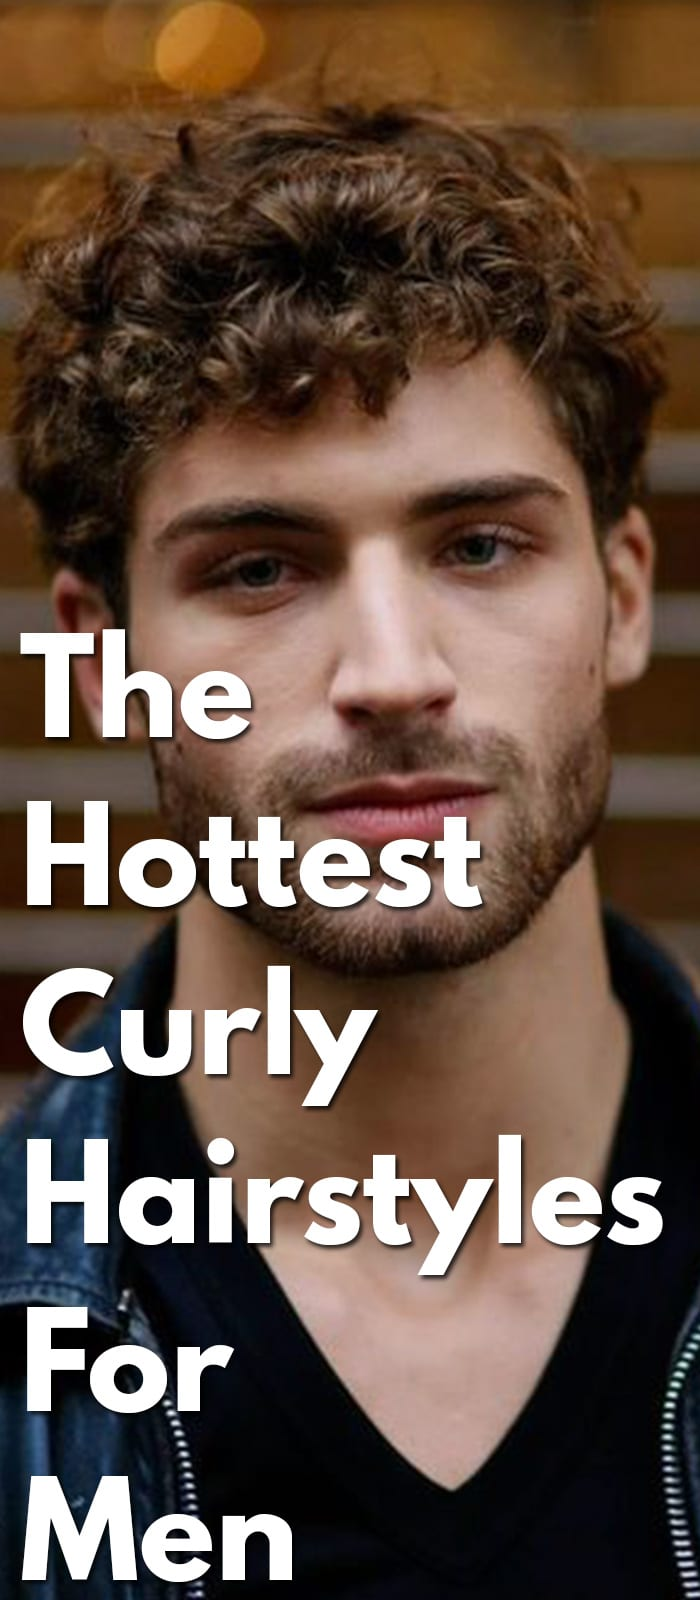 The-Hottest-Curly-Hairstyles-For-Men.